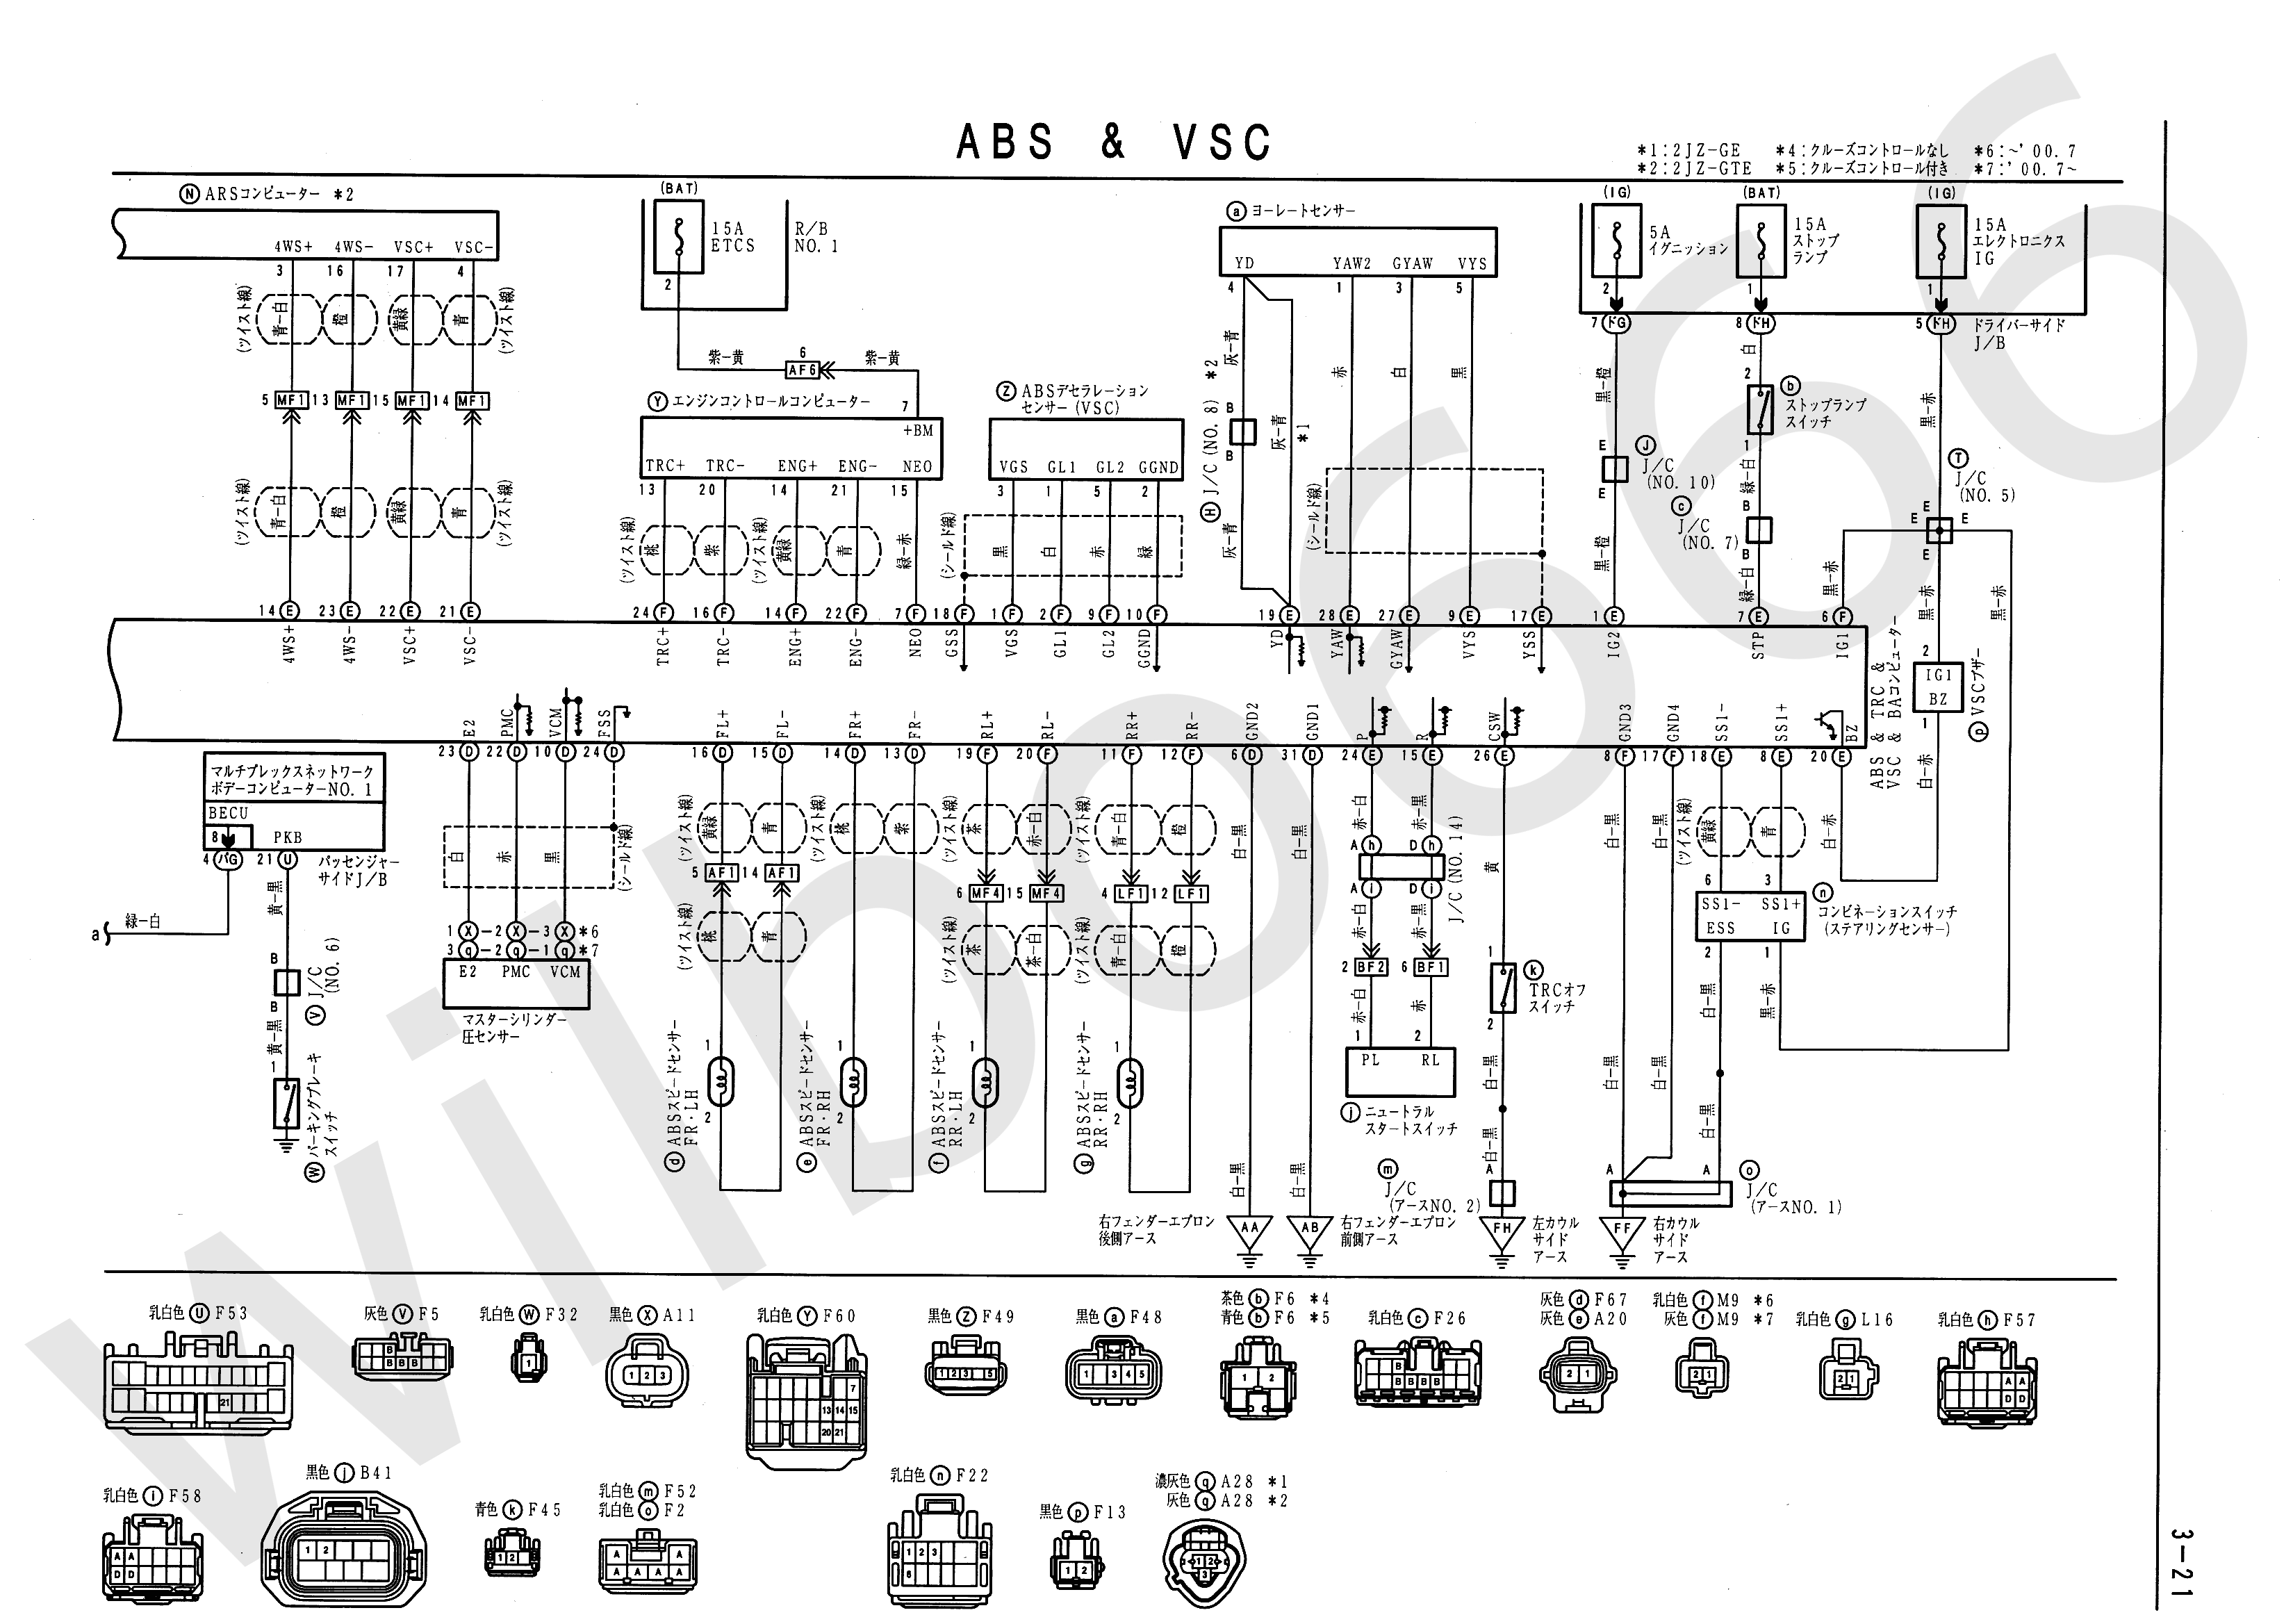 JZS161 Electrical Wiring Diagram 6748505 3 21?resize\\\\\\\\\\\\\\\=840%2C595 bad boy buggy wiring diagram cub cadet volunteer wiring diagram Giddy Up Kramer at cos-gaming.co